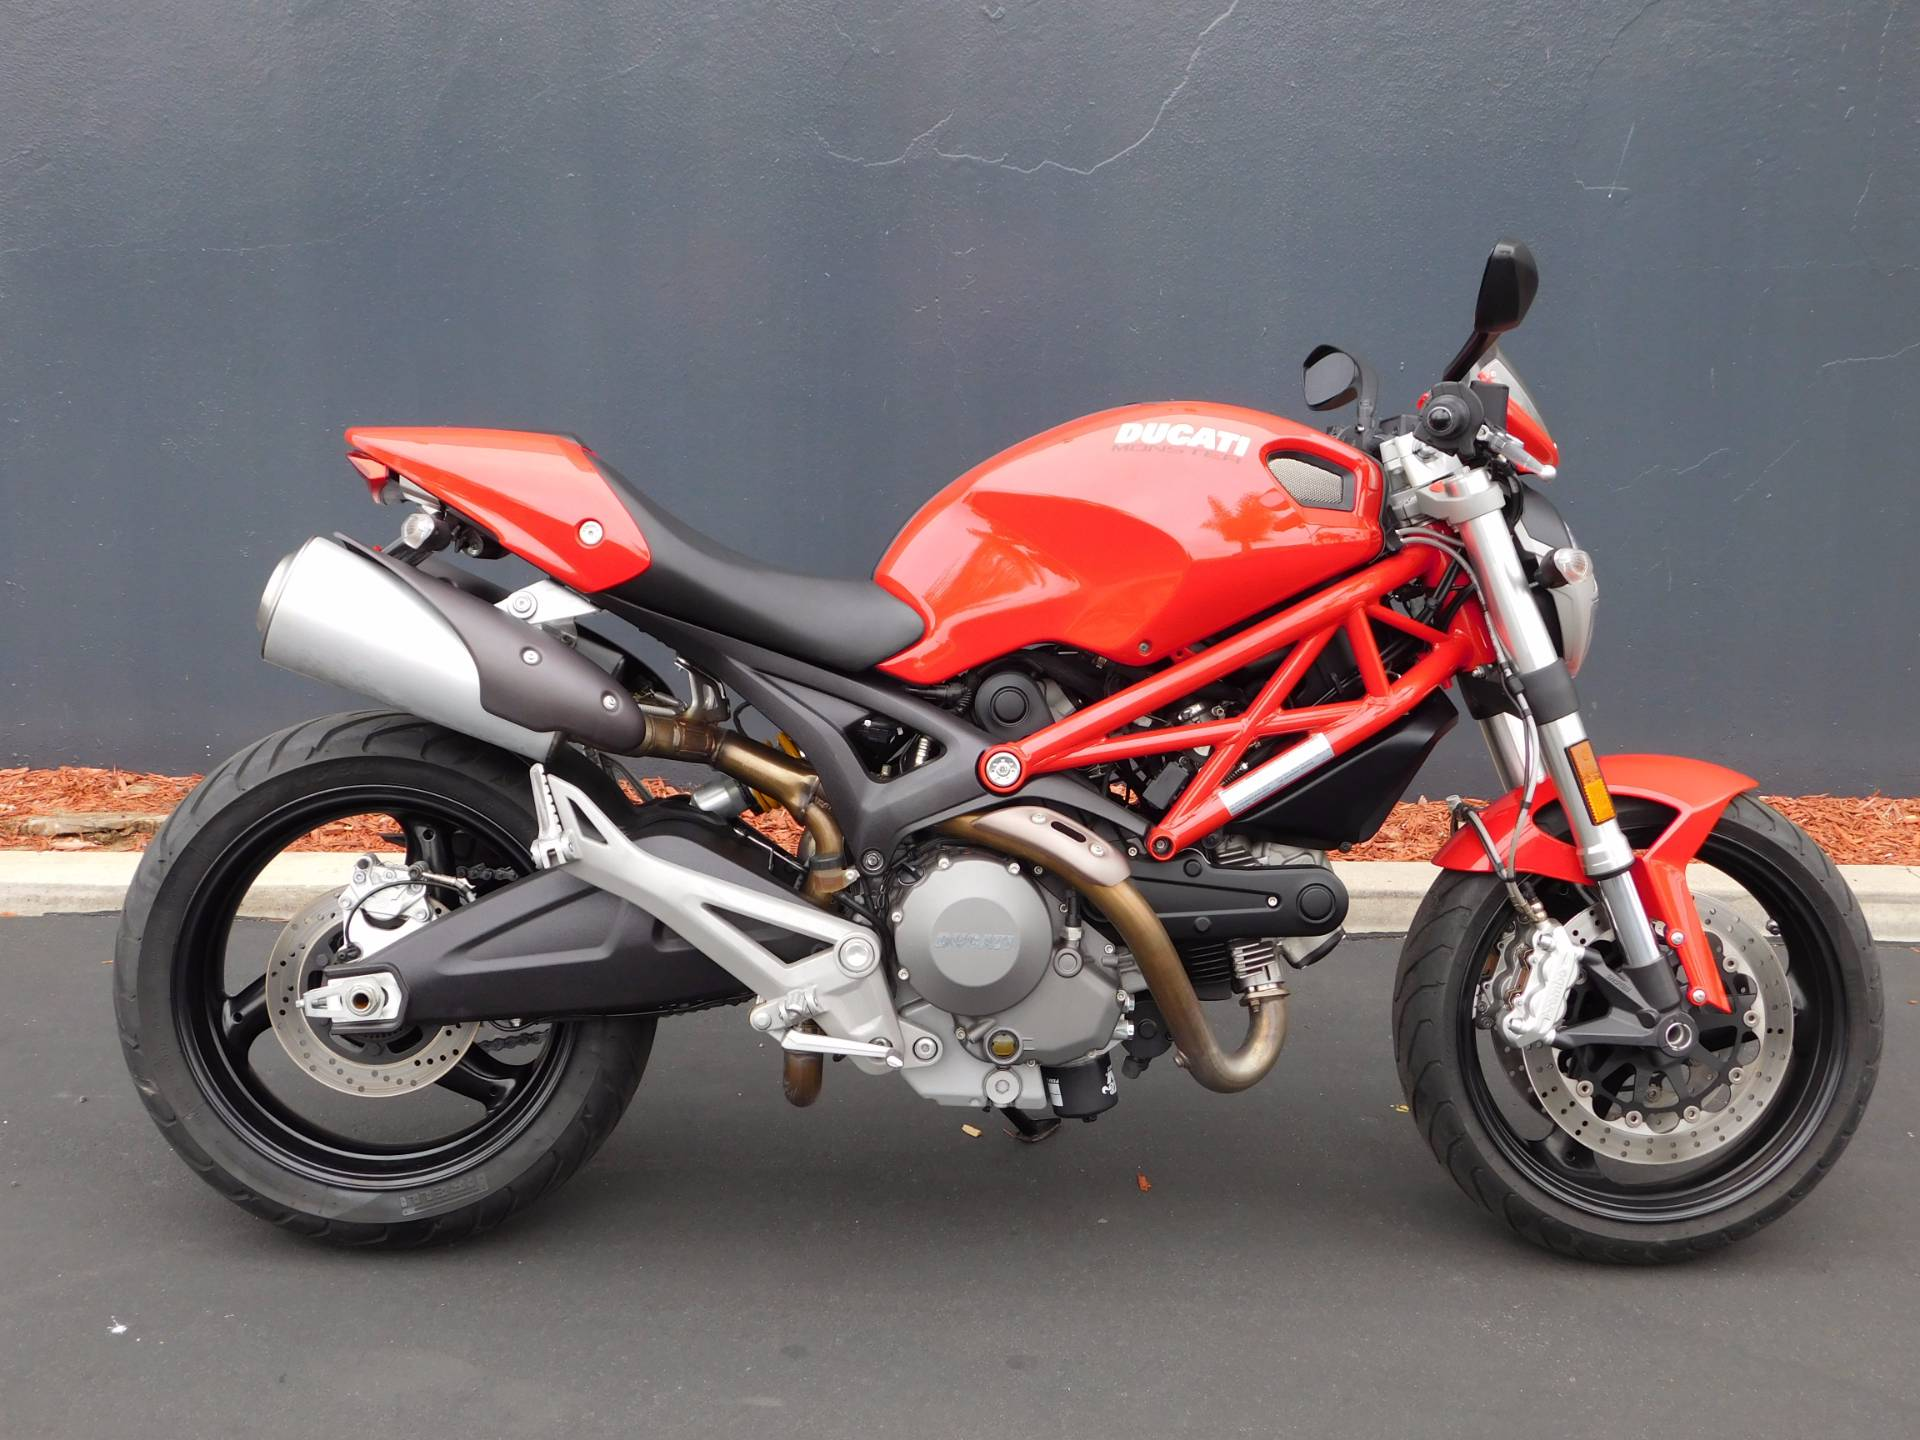 Used 2010 Ducati Monster 696 Motorcycles in Chula Vista, CA | Stock ...